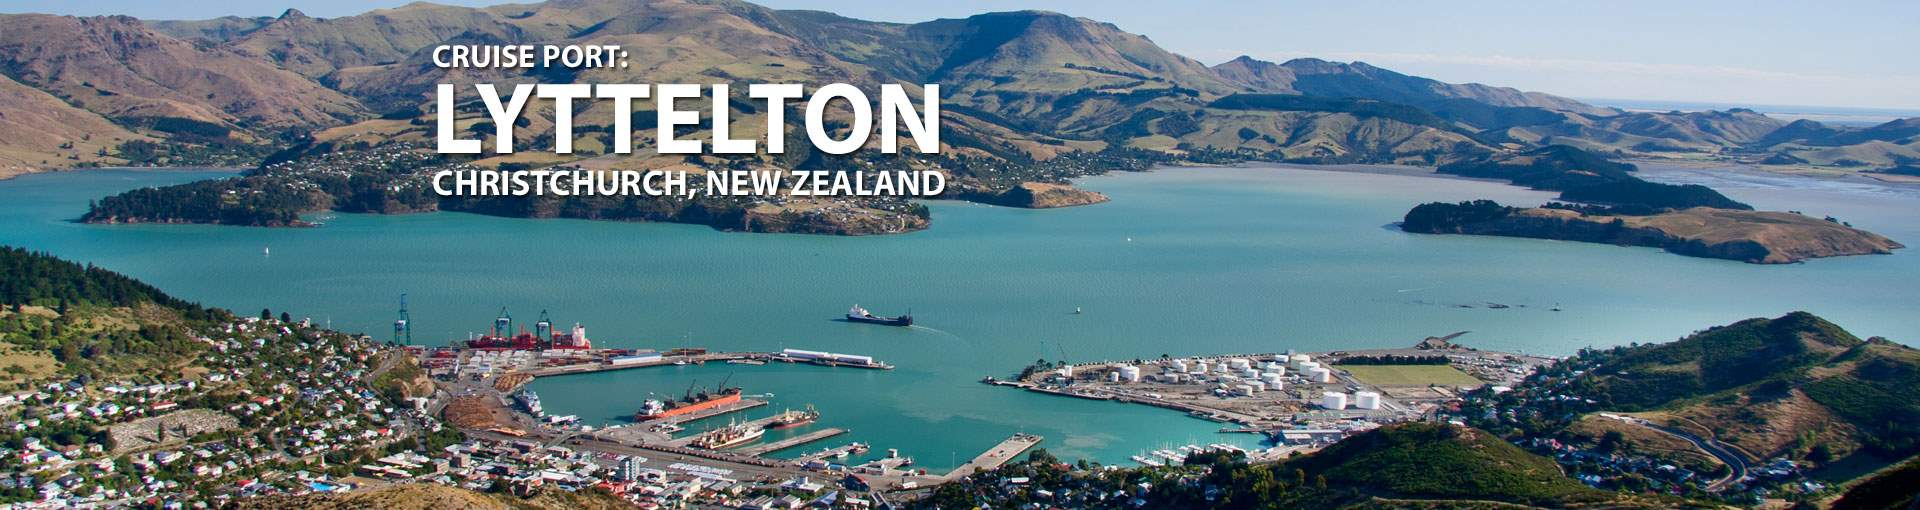 Cruises to Lyttelton (Christchurch), New Zealand